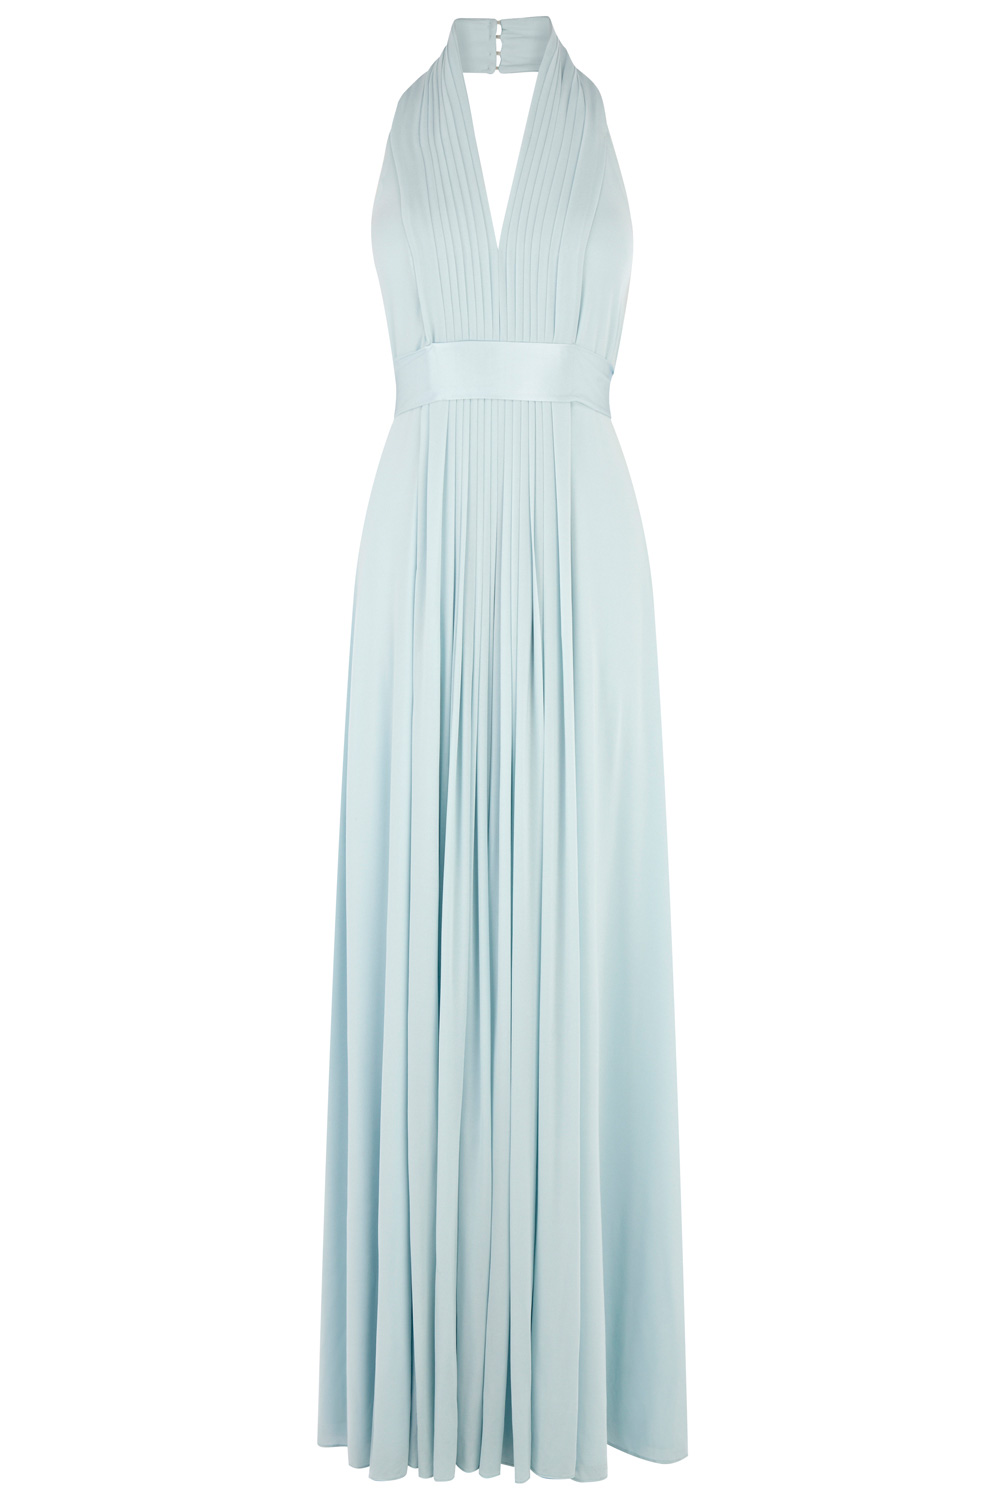 New In | Blues Goddess Maxi Dress  | Coast Stores Limited